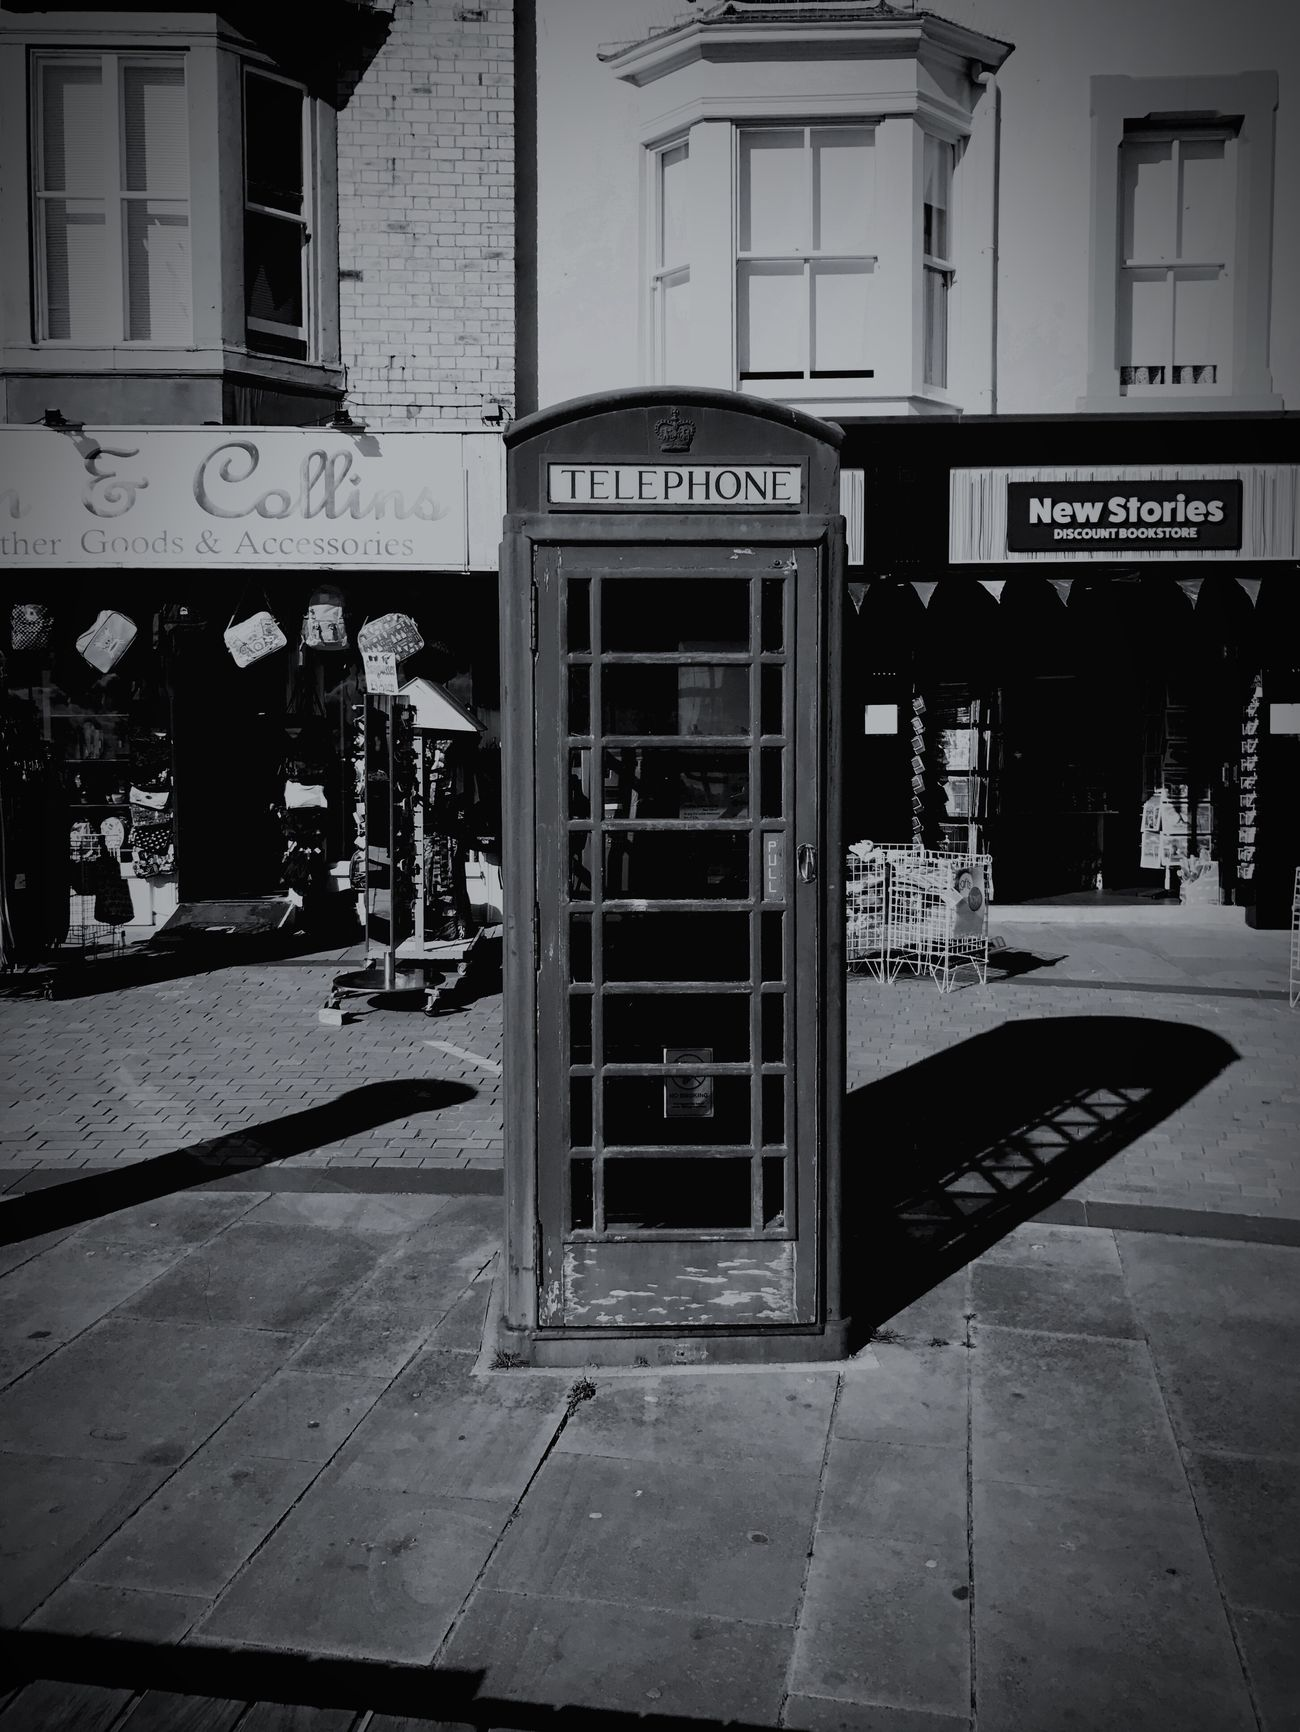 First Eyeem Photo Outdoors Communication Text Built Structure Building Exterior City Architecture No People Day Technology Close-up Blackandwhite Black White Dark Vintage Inspiration England Frontal Front View Frontal Shot Telephone Booth Telephone Old Welcome To Black